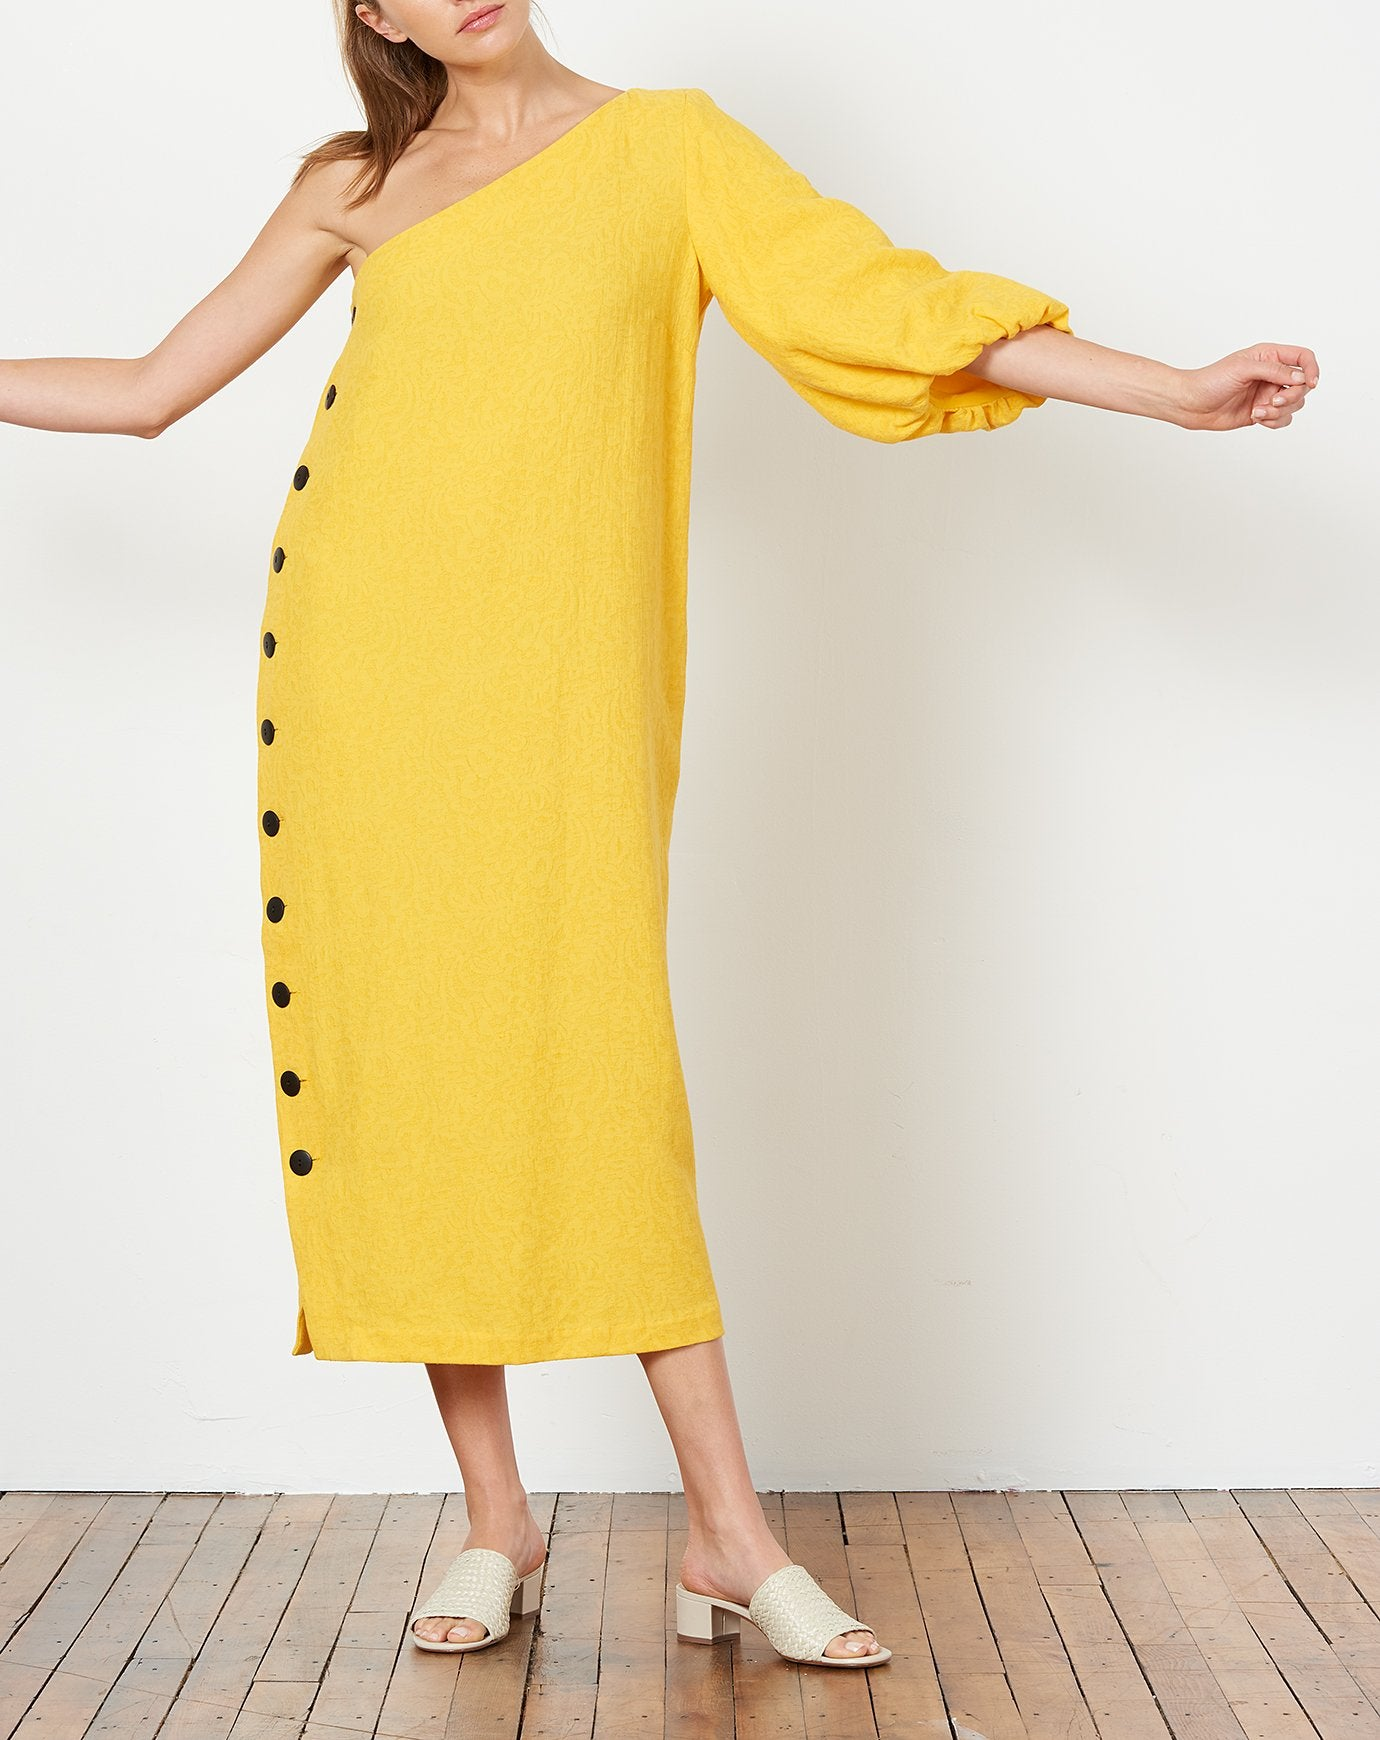 Emilie Dress in Yellow Jacquard